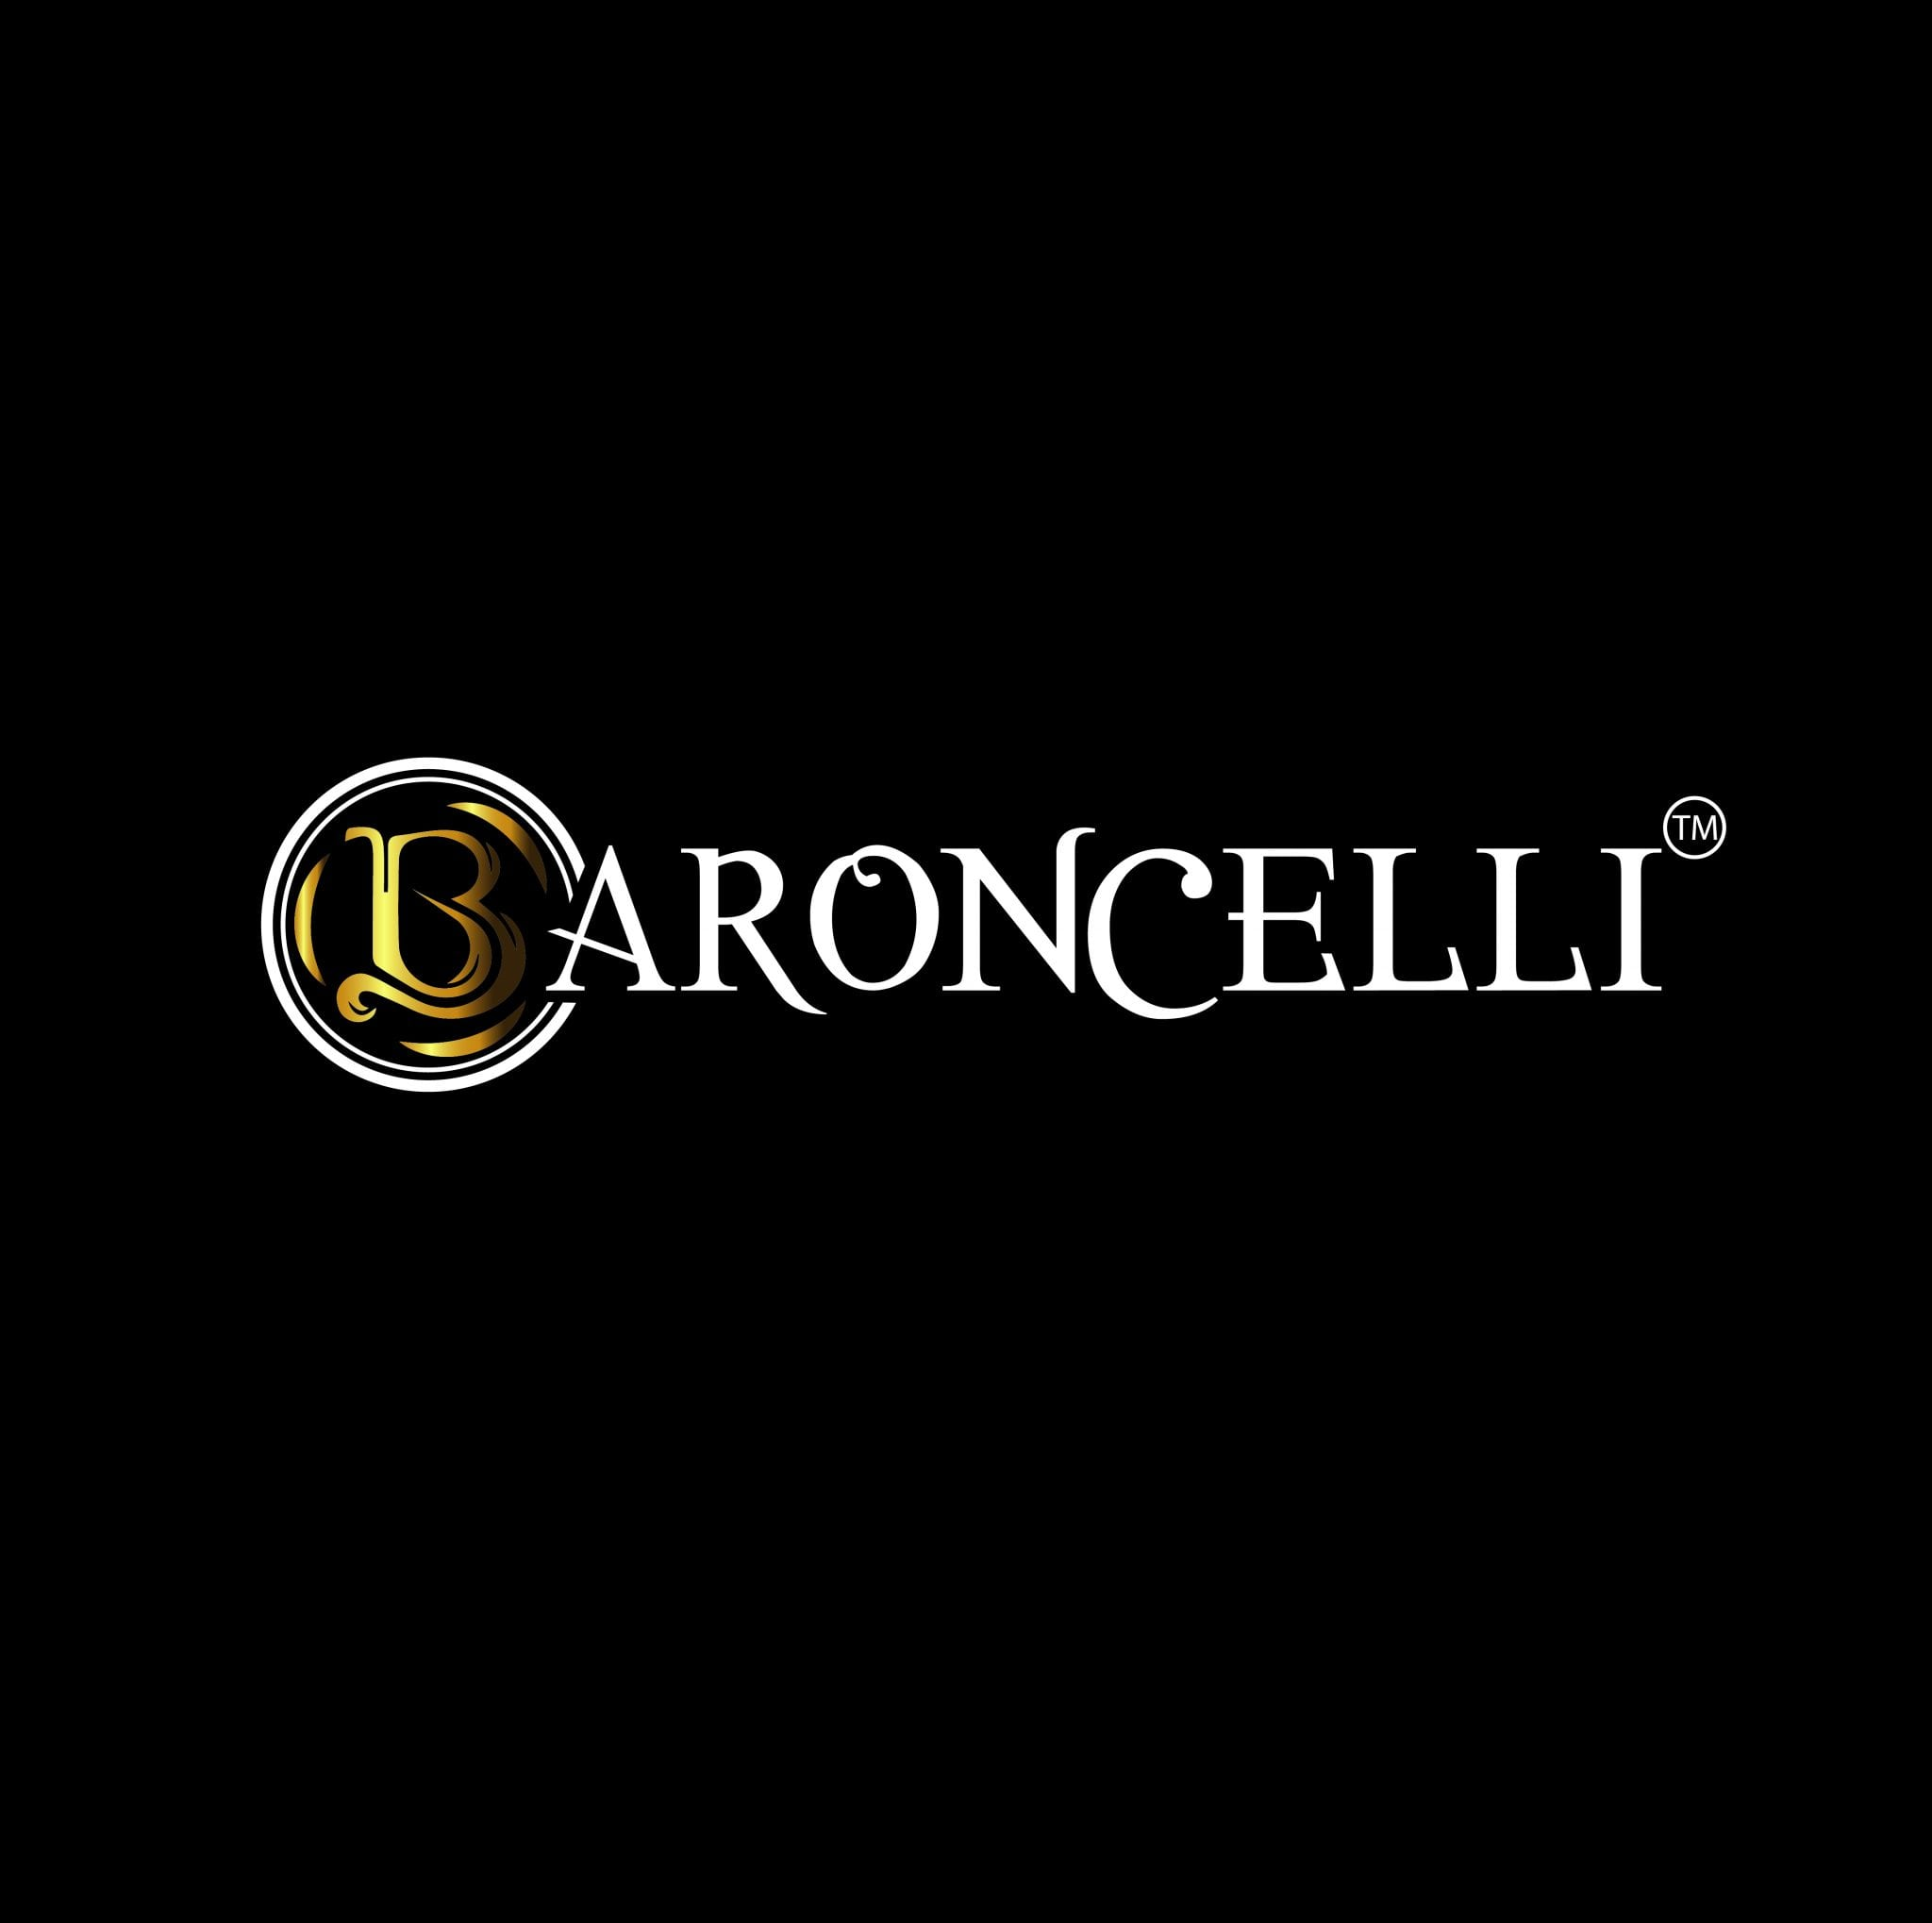 LOGO BARONCELLI final TM black